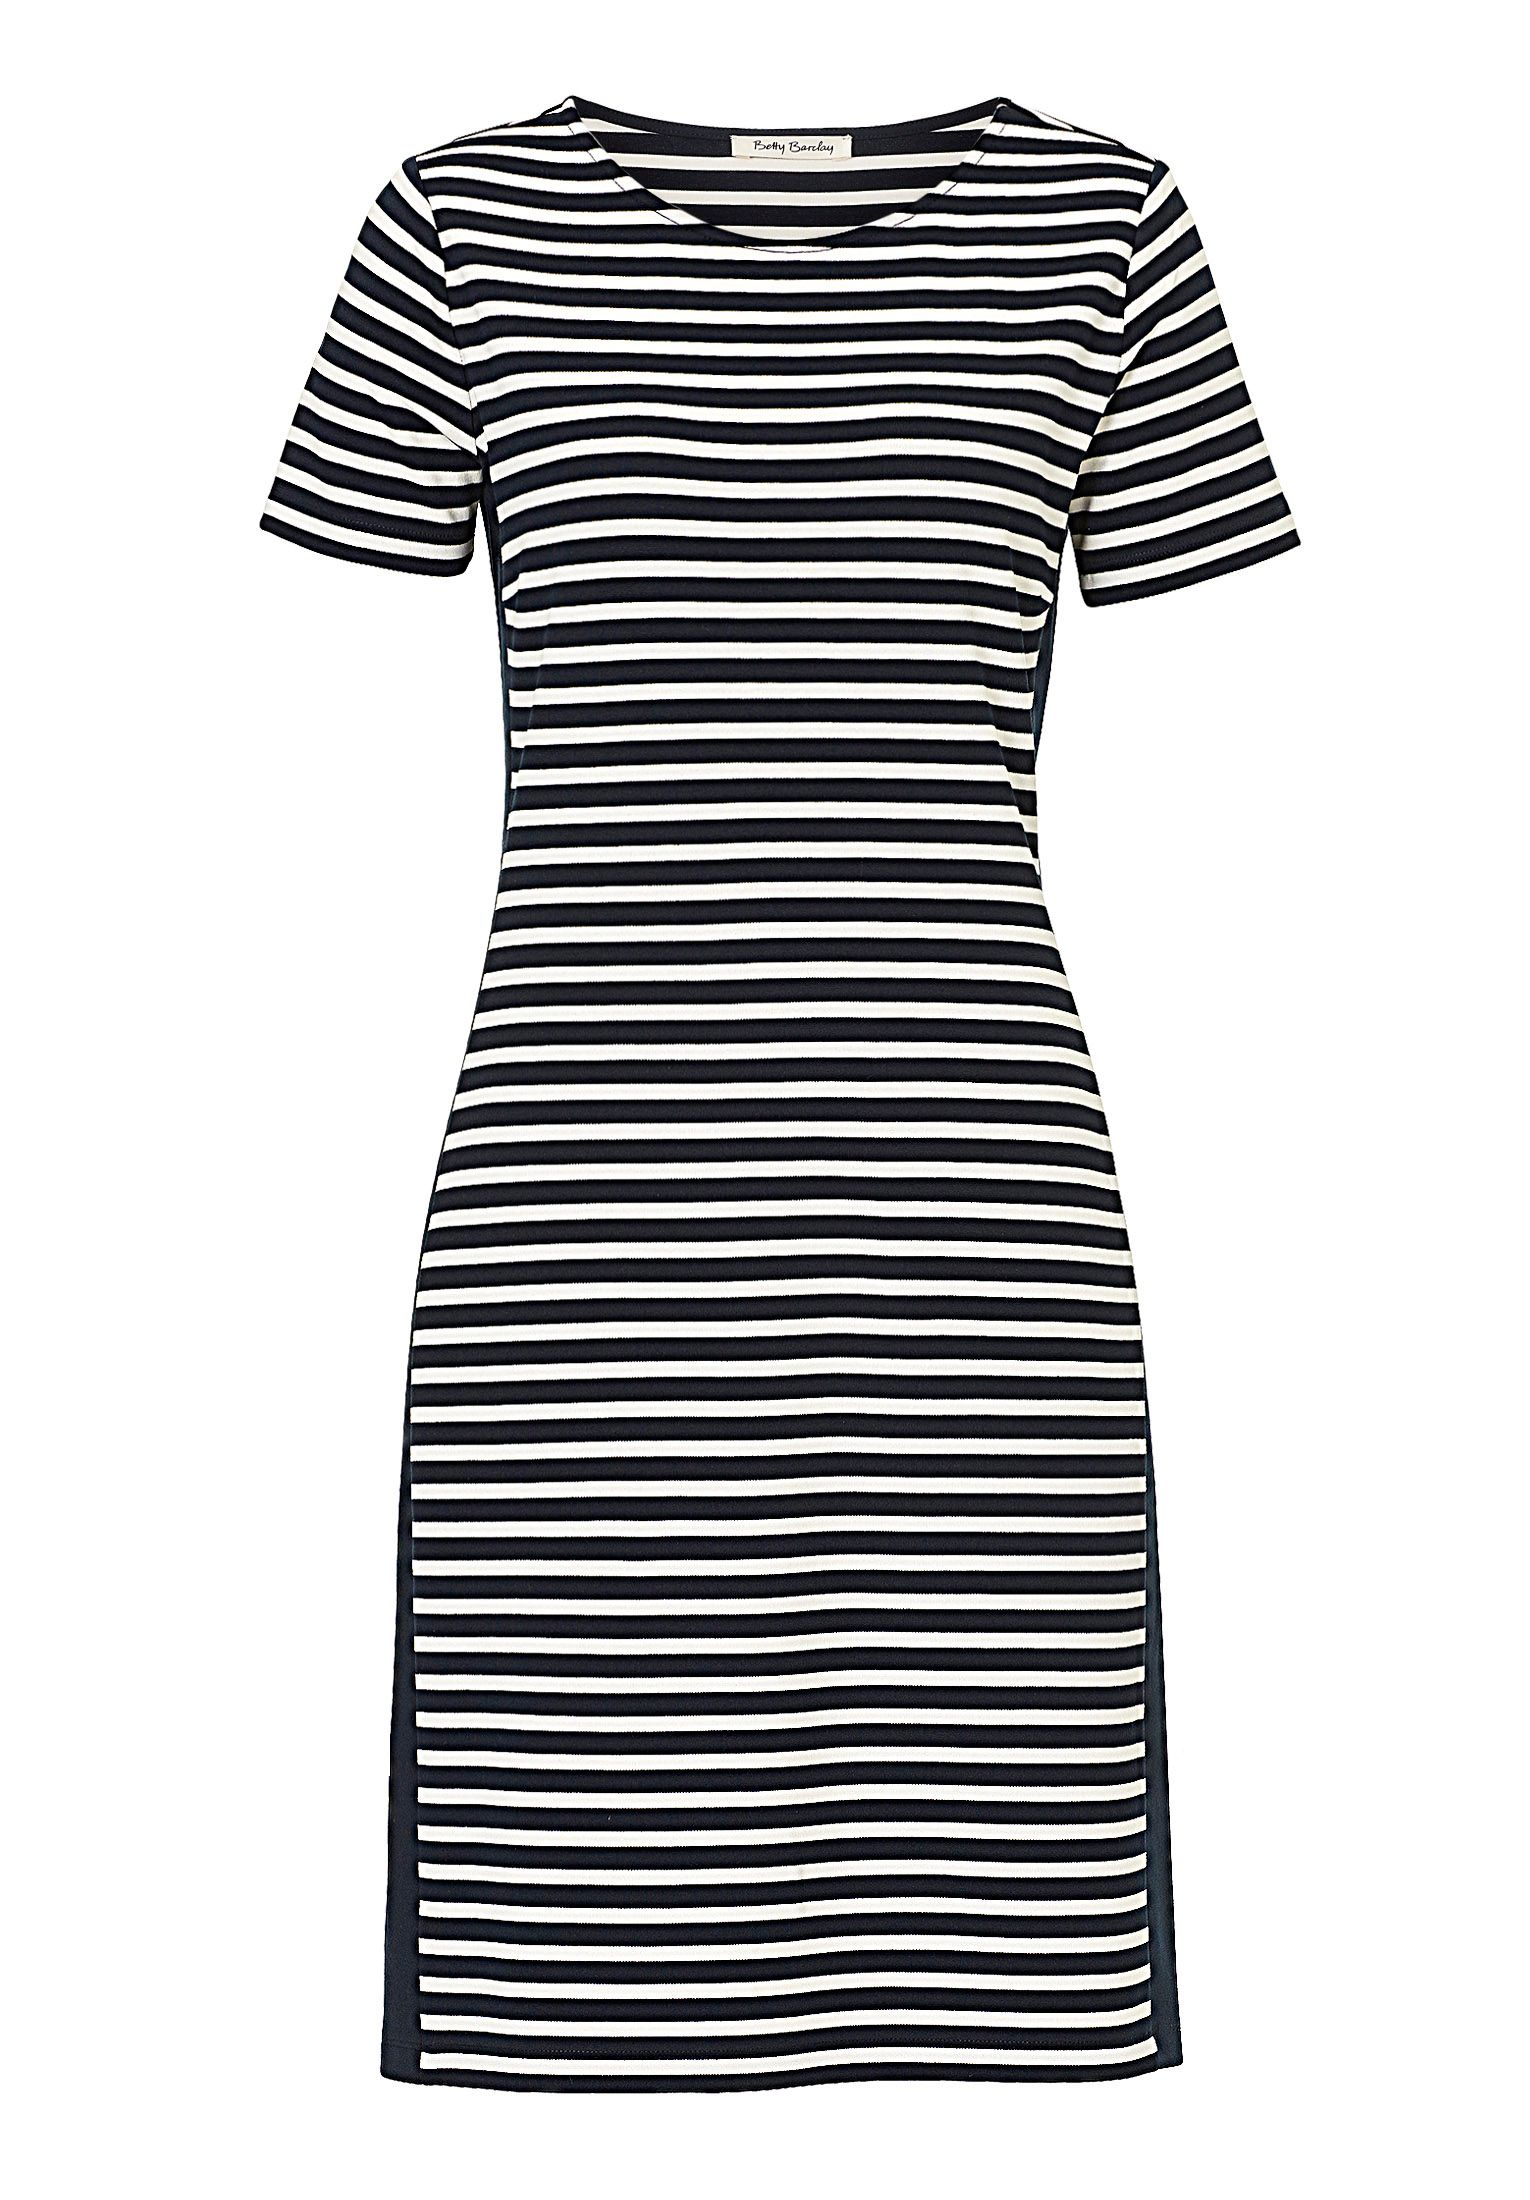 Betty Barclay Striped jersey dress, Multi-Coloured